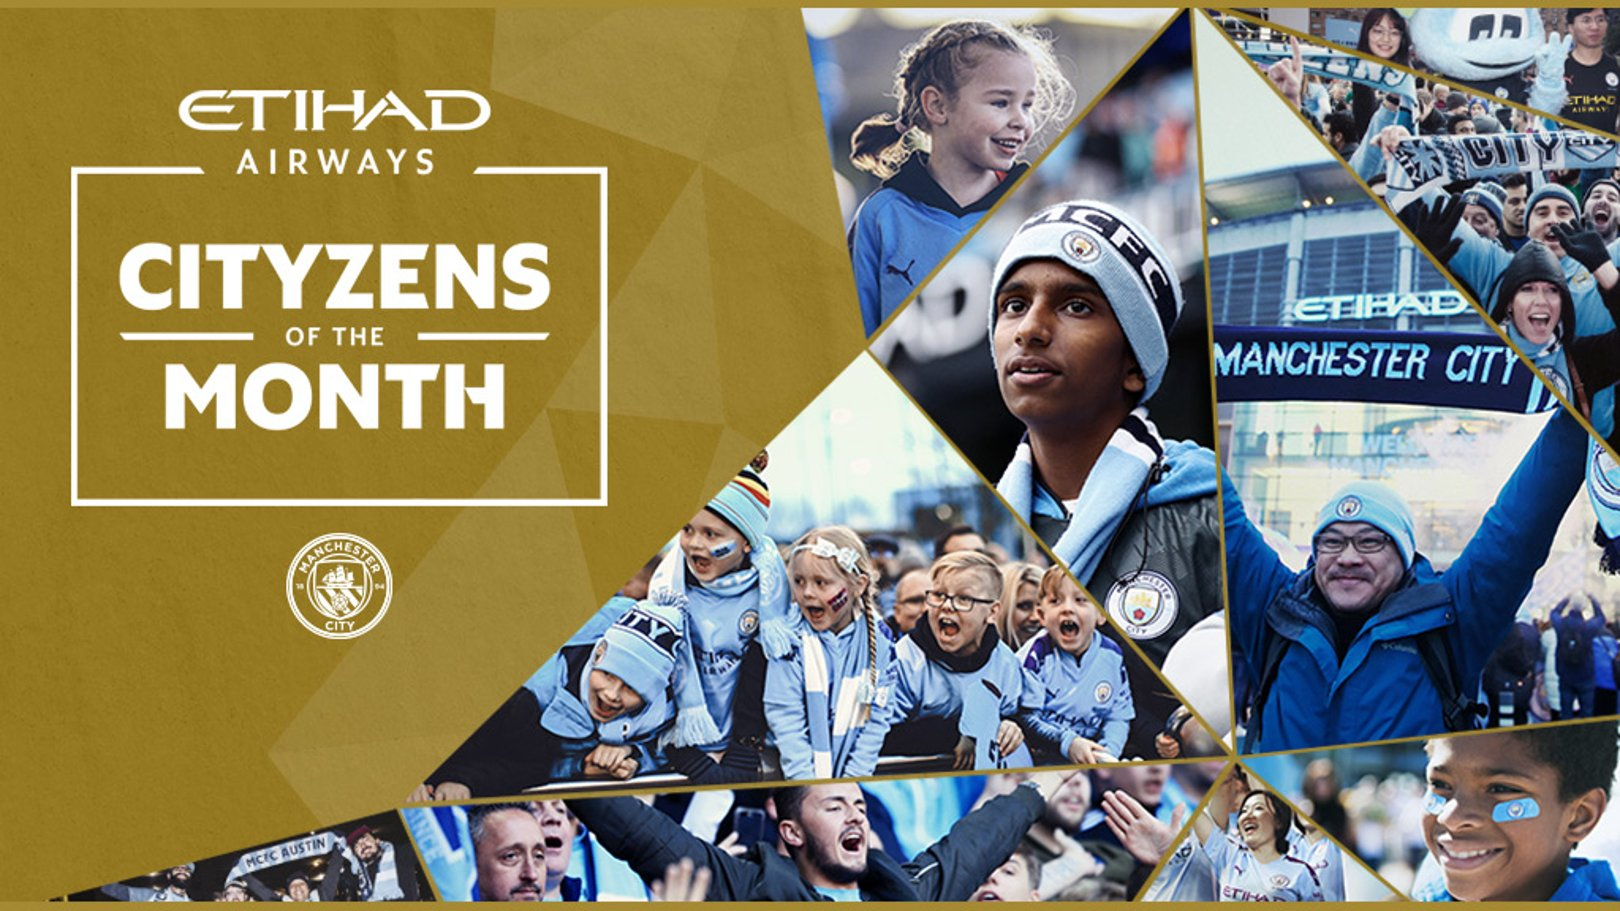 Etihad Cityzens of the Month campaign launches